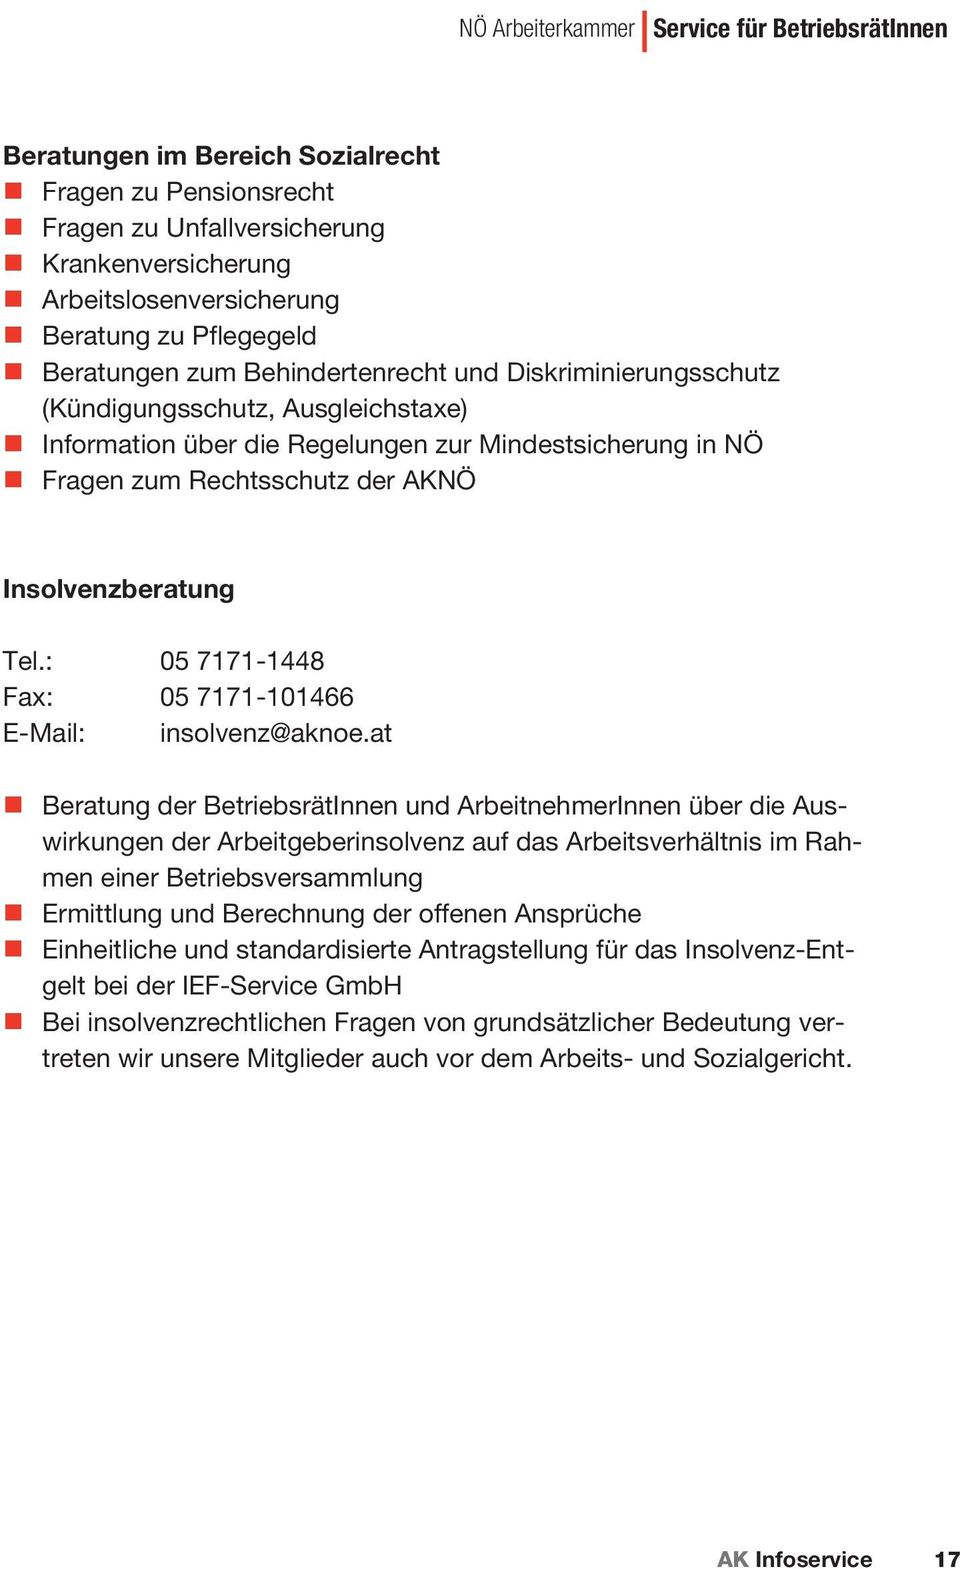 Insolvenzberatung Tel.: 05 7171-1448 Fax: 05 7171-101466 E-Mail: insolvenz@aknoe.